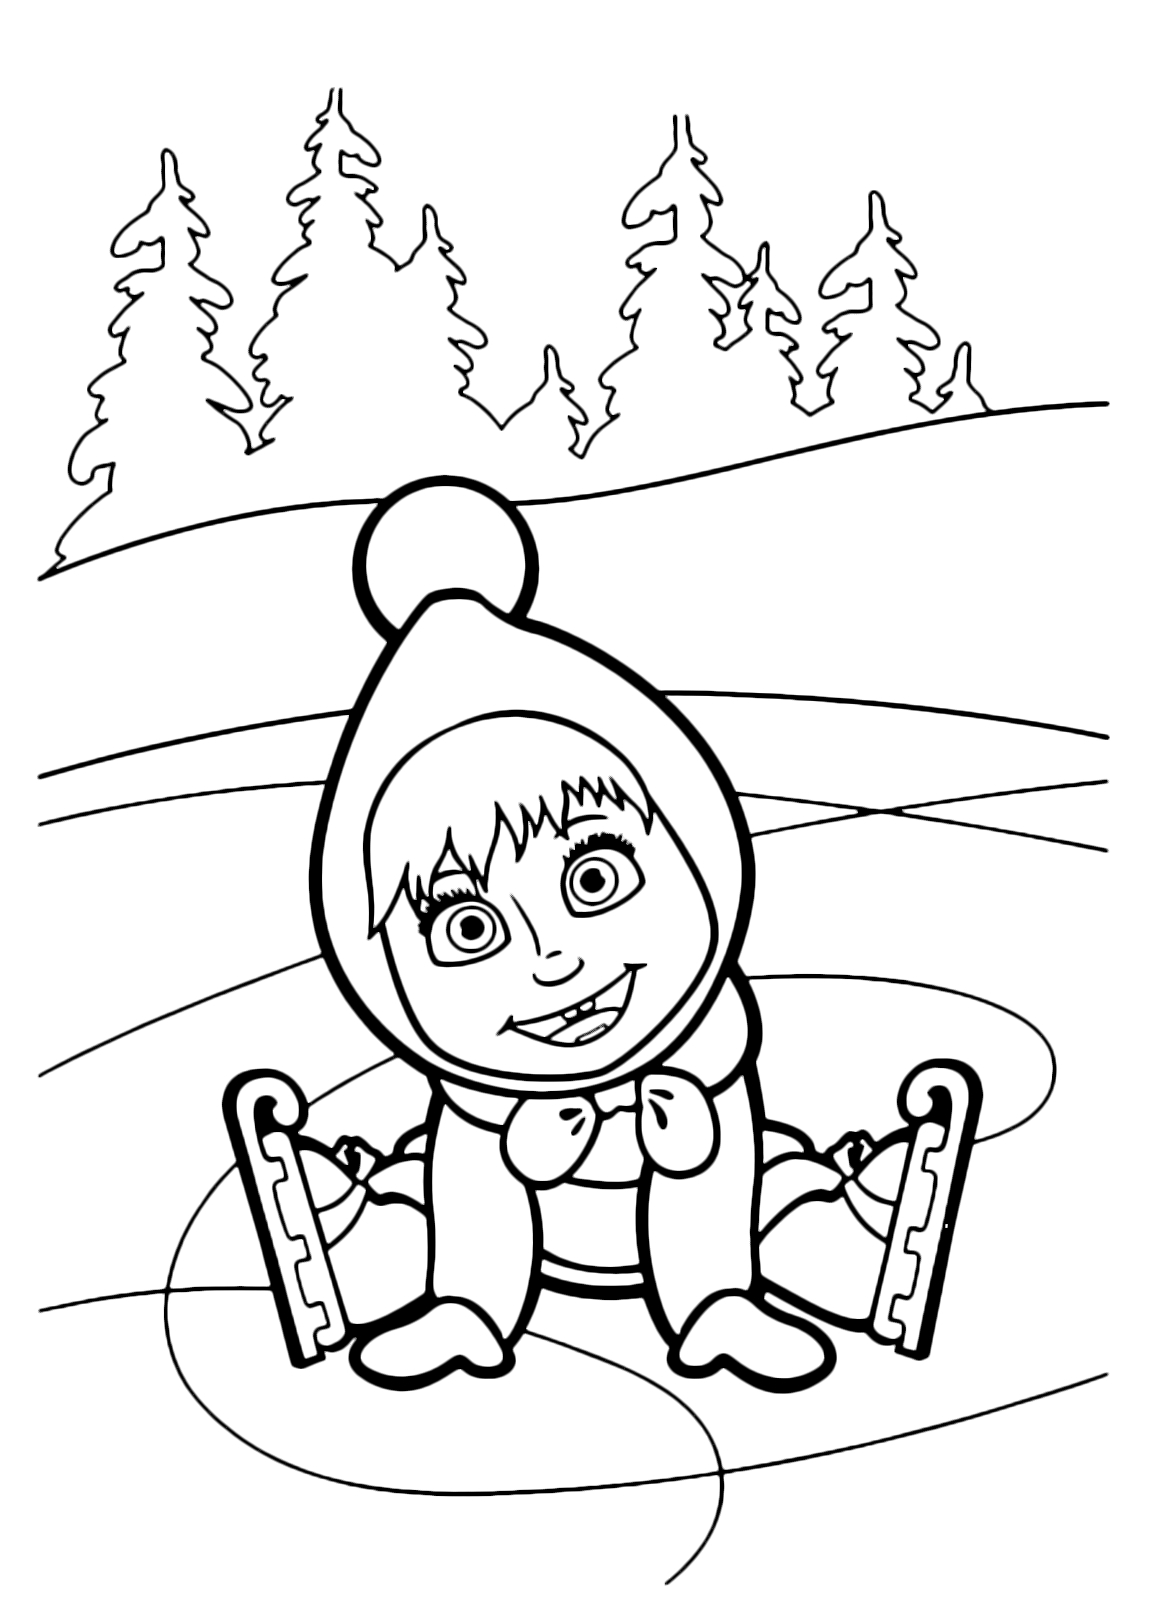 24 Masha and the Bear Coloring Pages Pictures | FREE COLORING PAGES